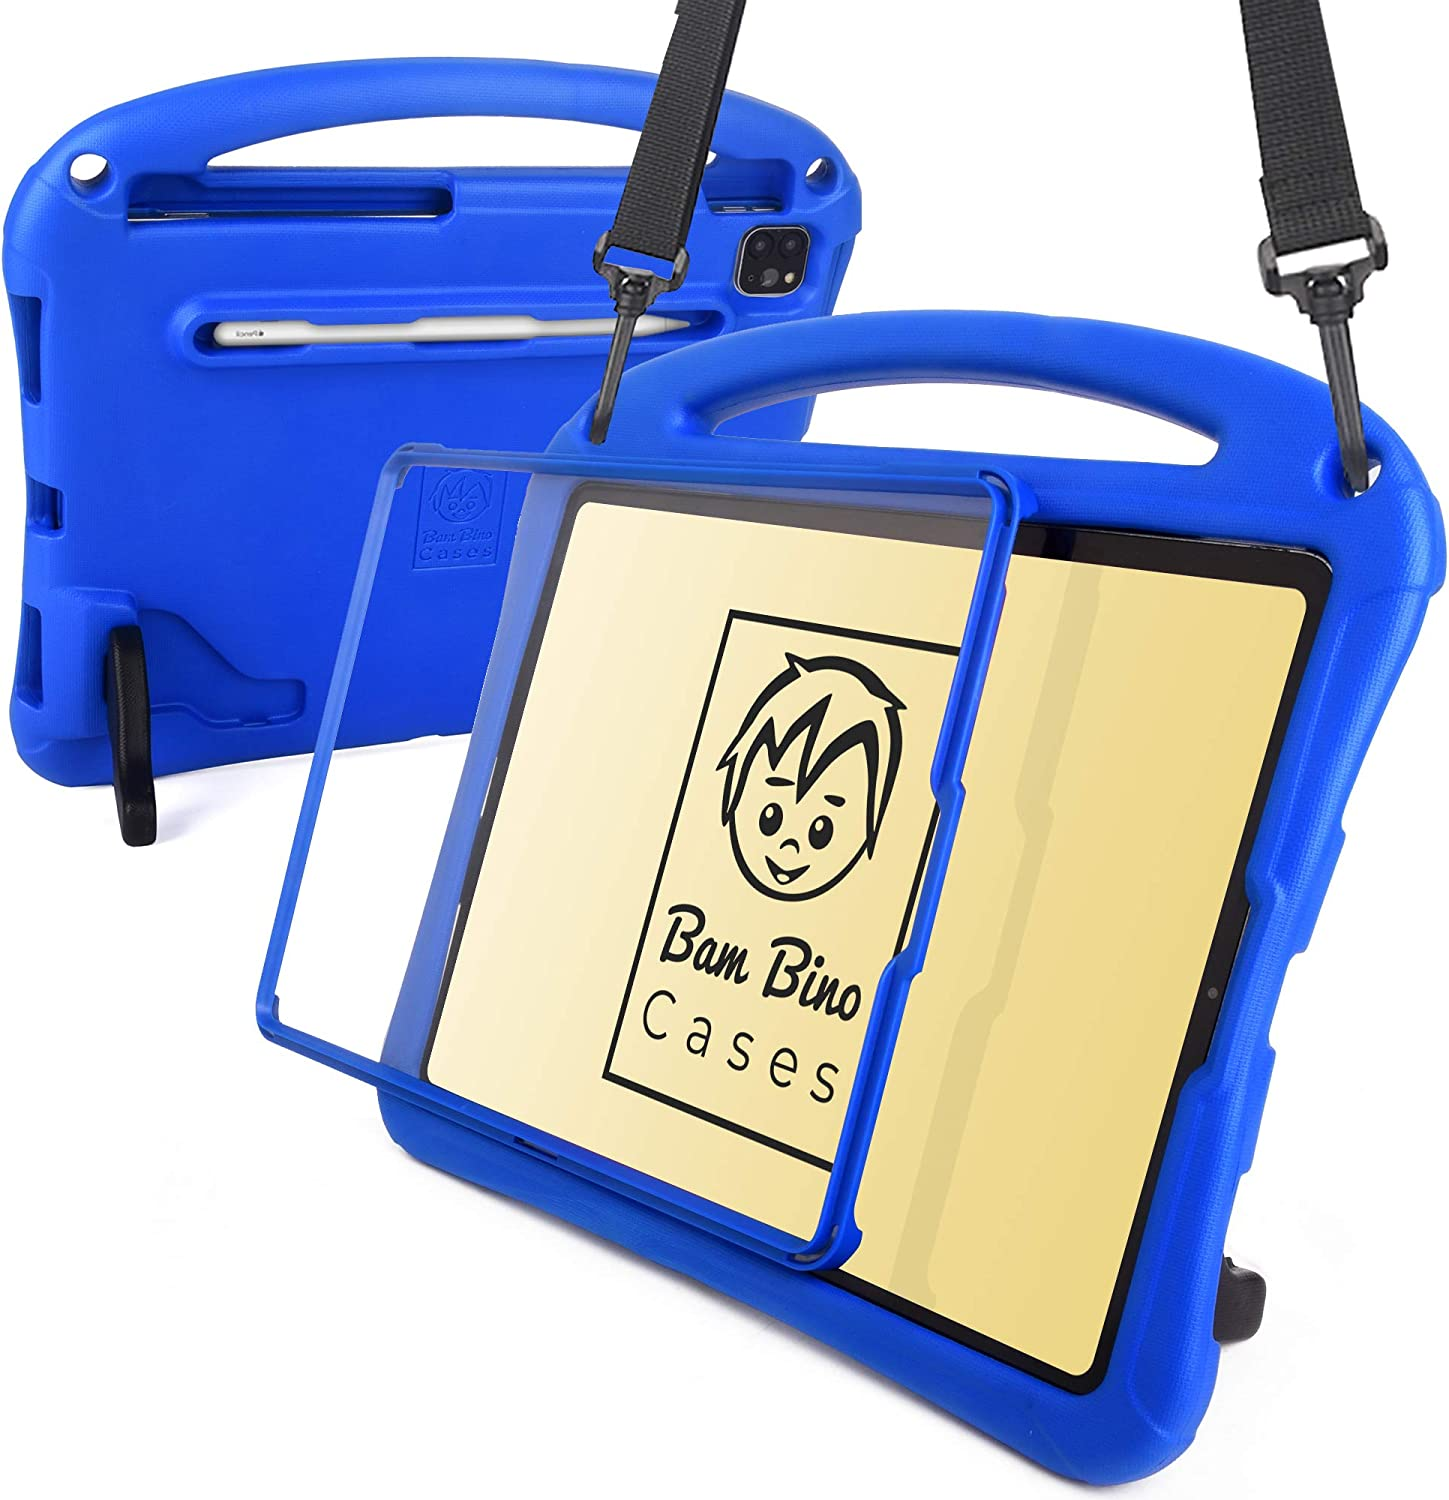 Bam Bino Space Suit [Rugged Kids Case] for 2020/2018 iPad Pro 12.9 4th & 3rd Gen | Designed in Australia | Screen Guard, Pencil Holder, Safety Strap (Blue)